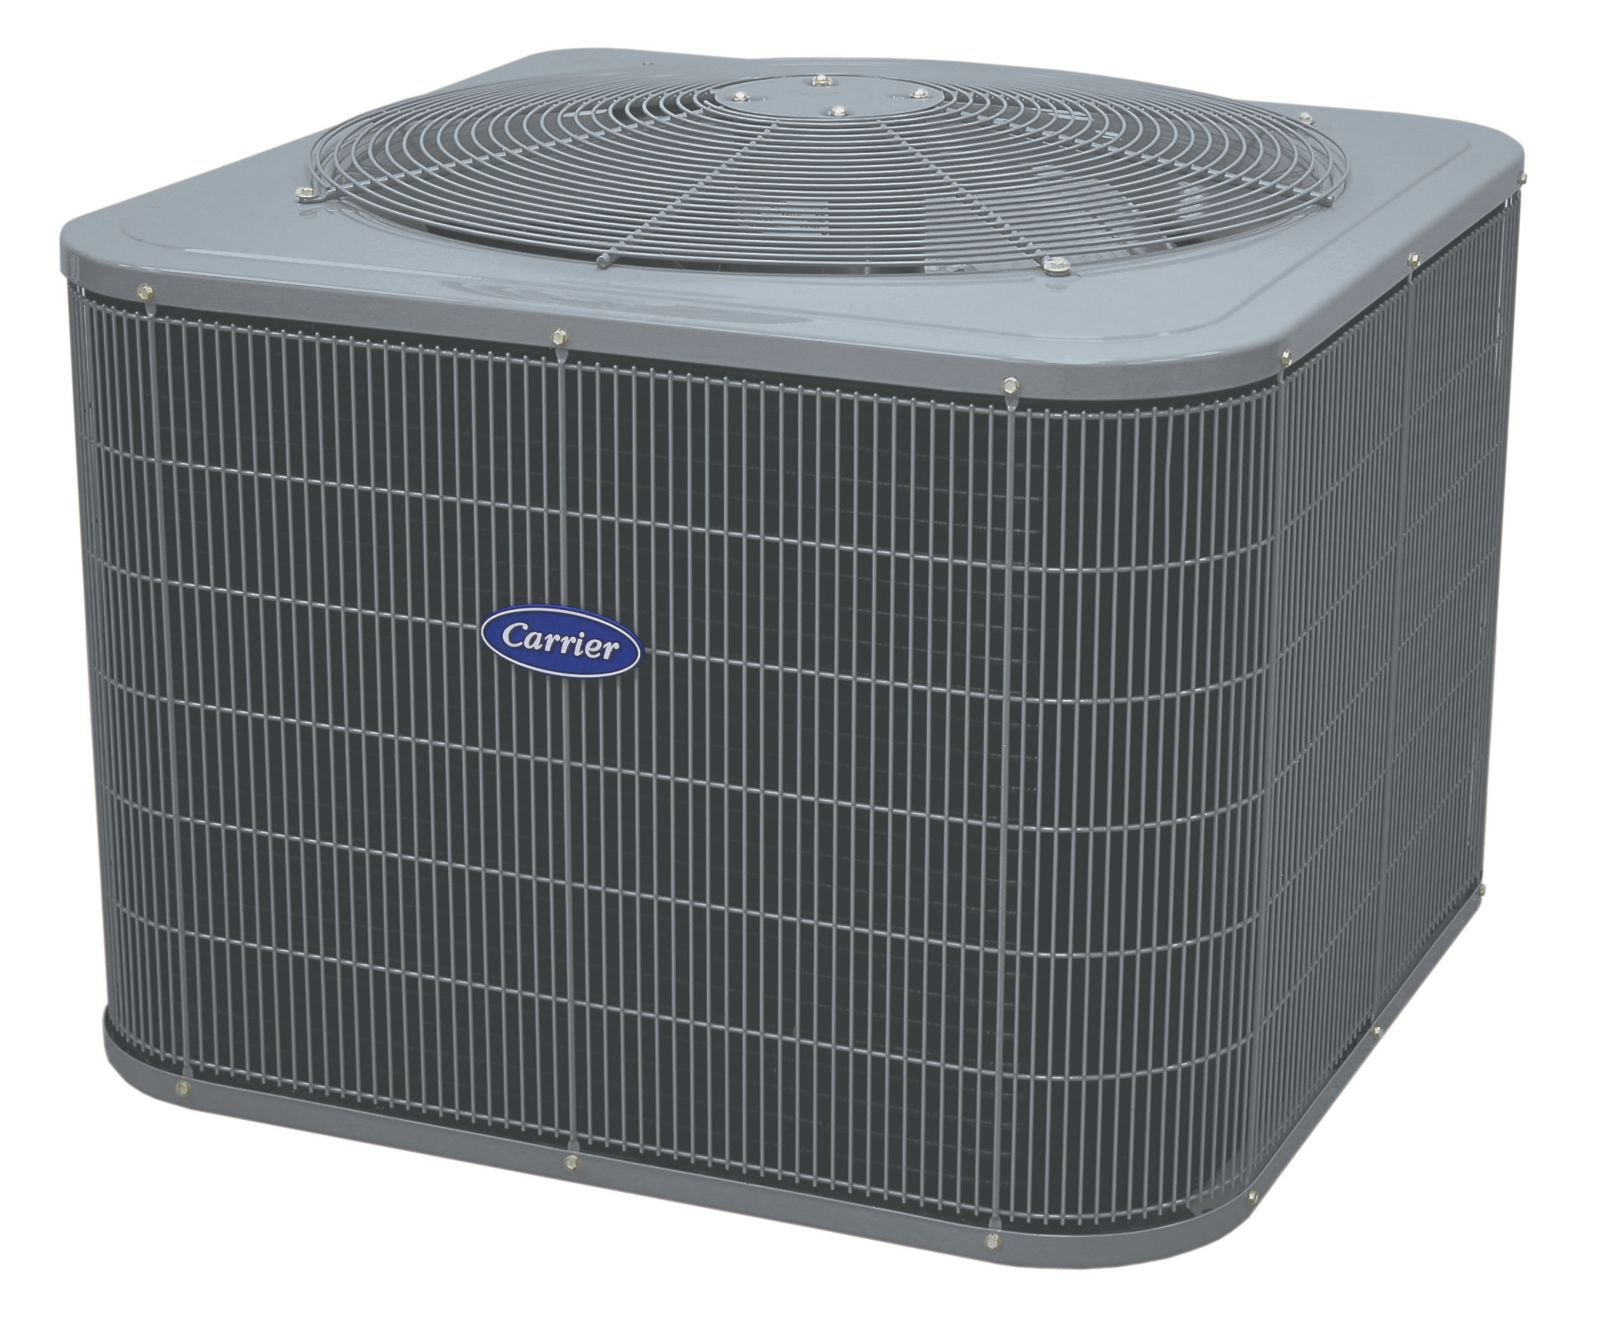 Carrier Comfort 5 Ton 16 Seer Residential Air Conditioner Home A C Condenser Relay Wiring Tools And Links